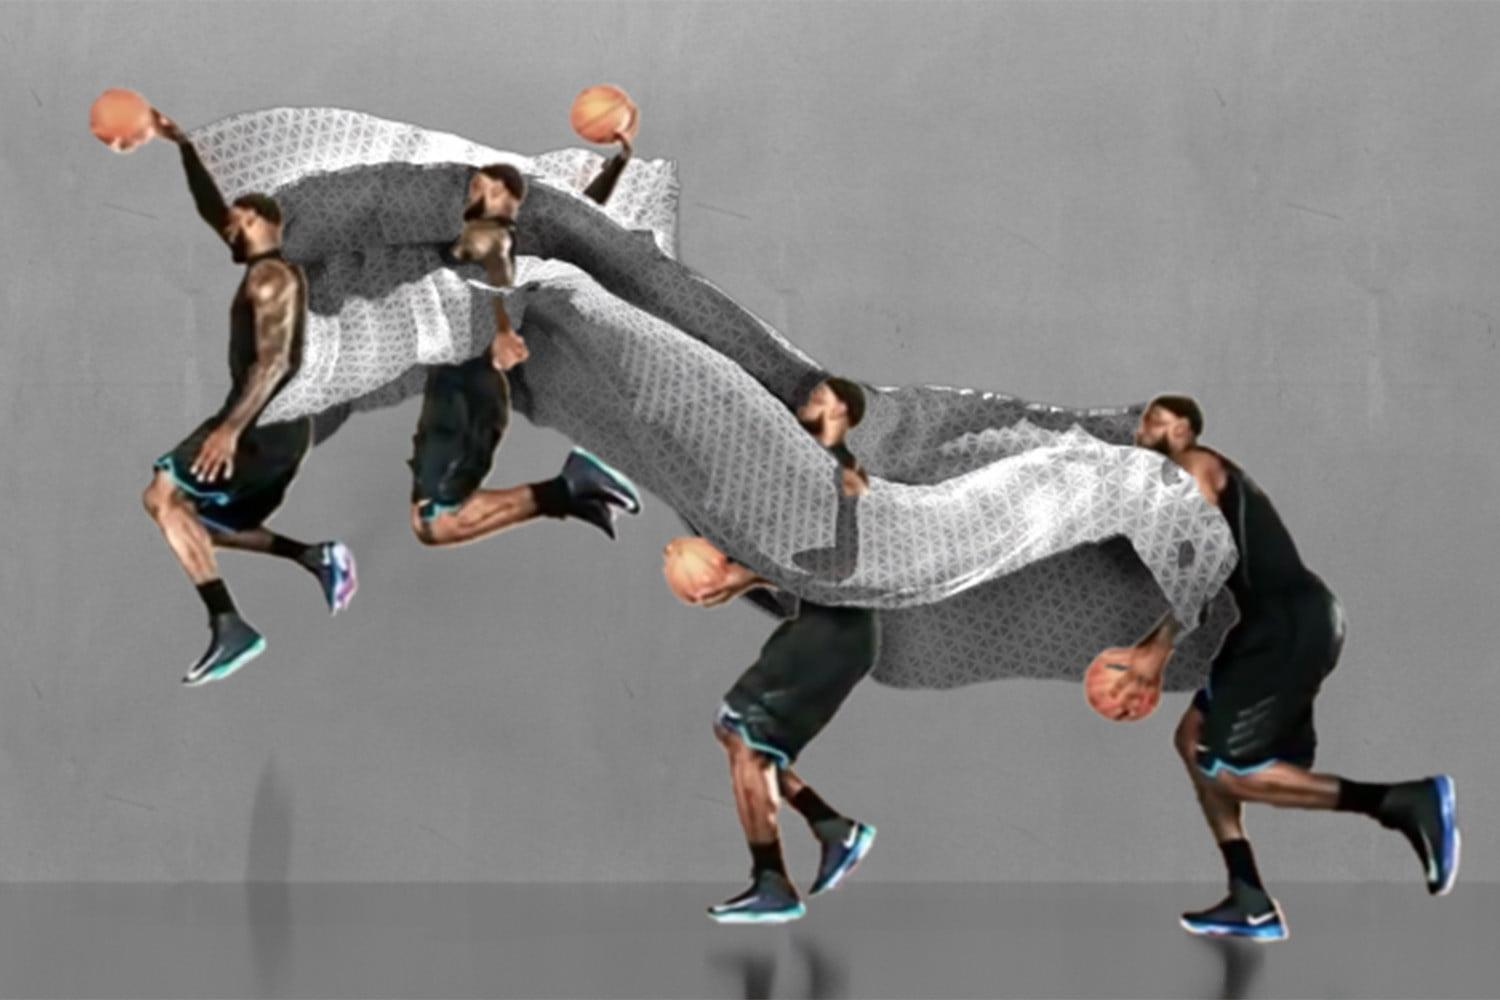 Wormlike motion sculptures show how athletes move in 3D